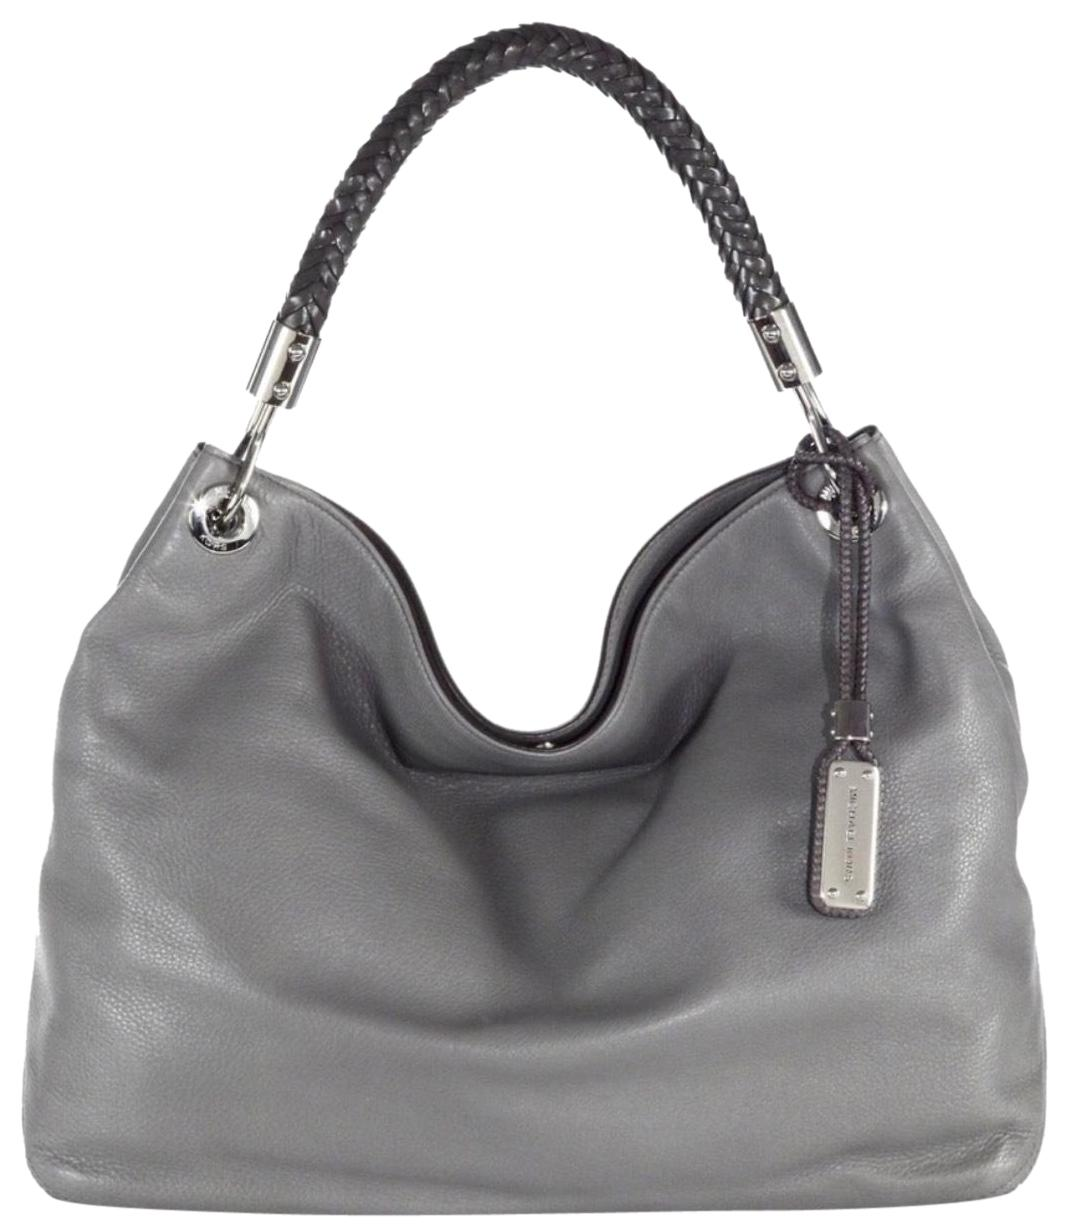 ... shoulder bag in black lyst b37c7 254be  discount michael kors hobo bag  e1497 90aea 3e169218bb488